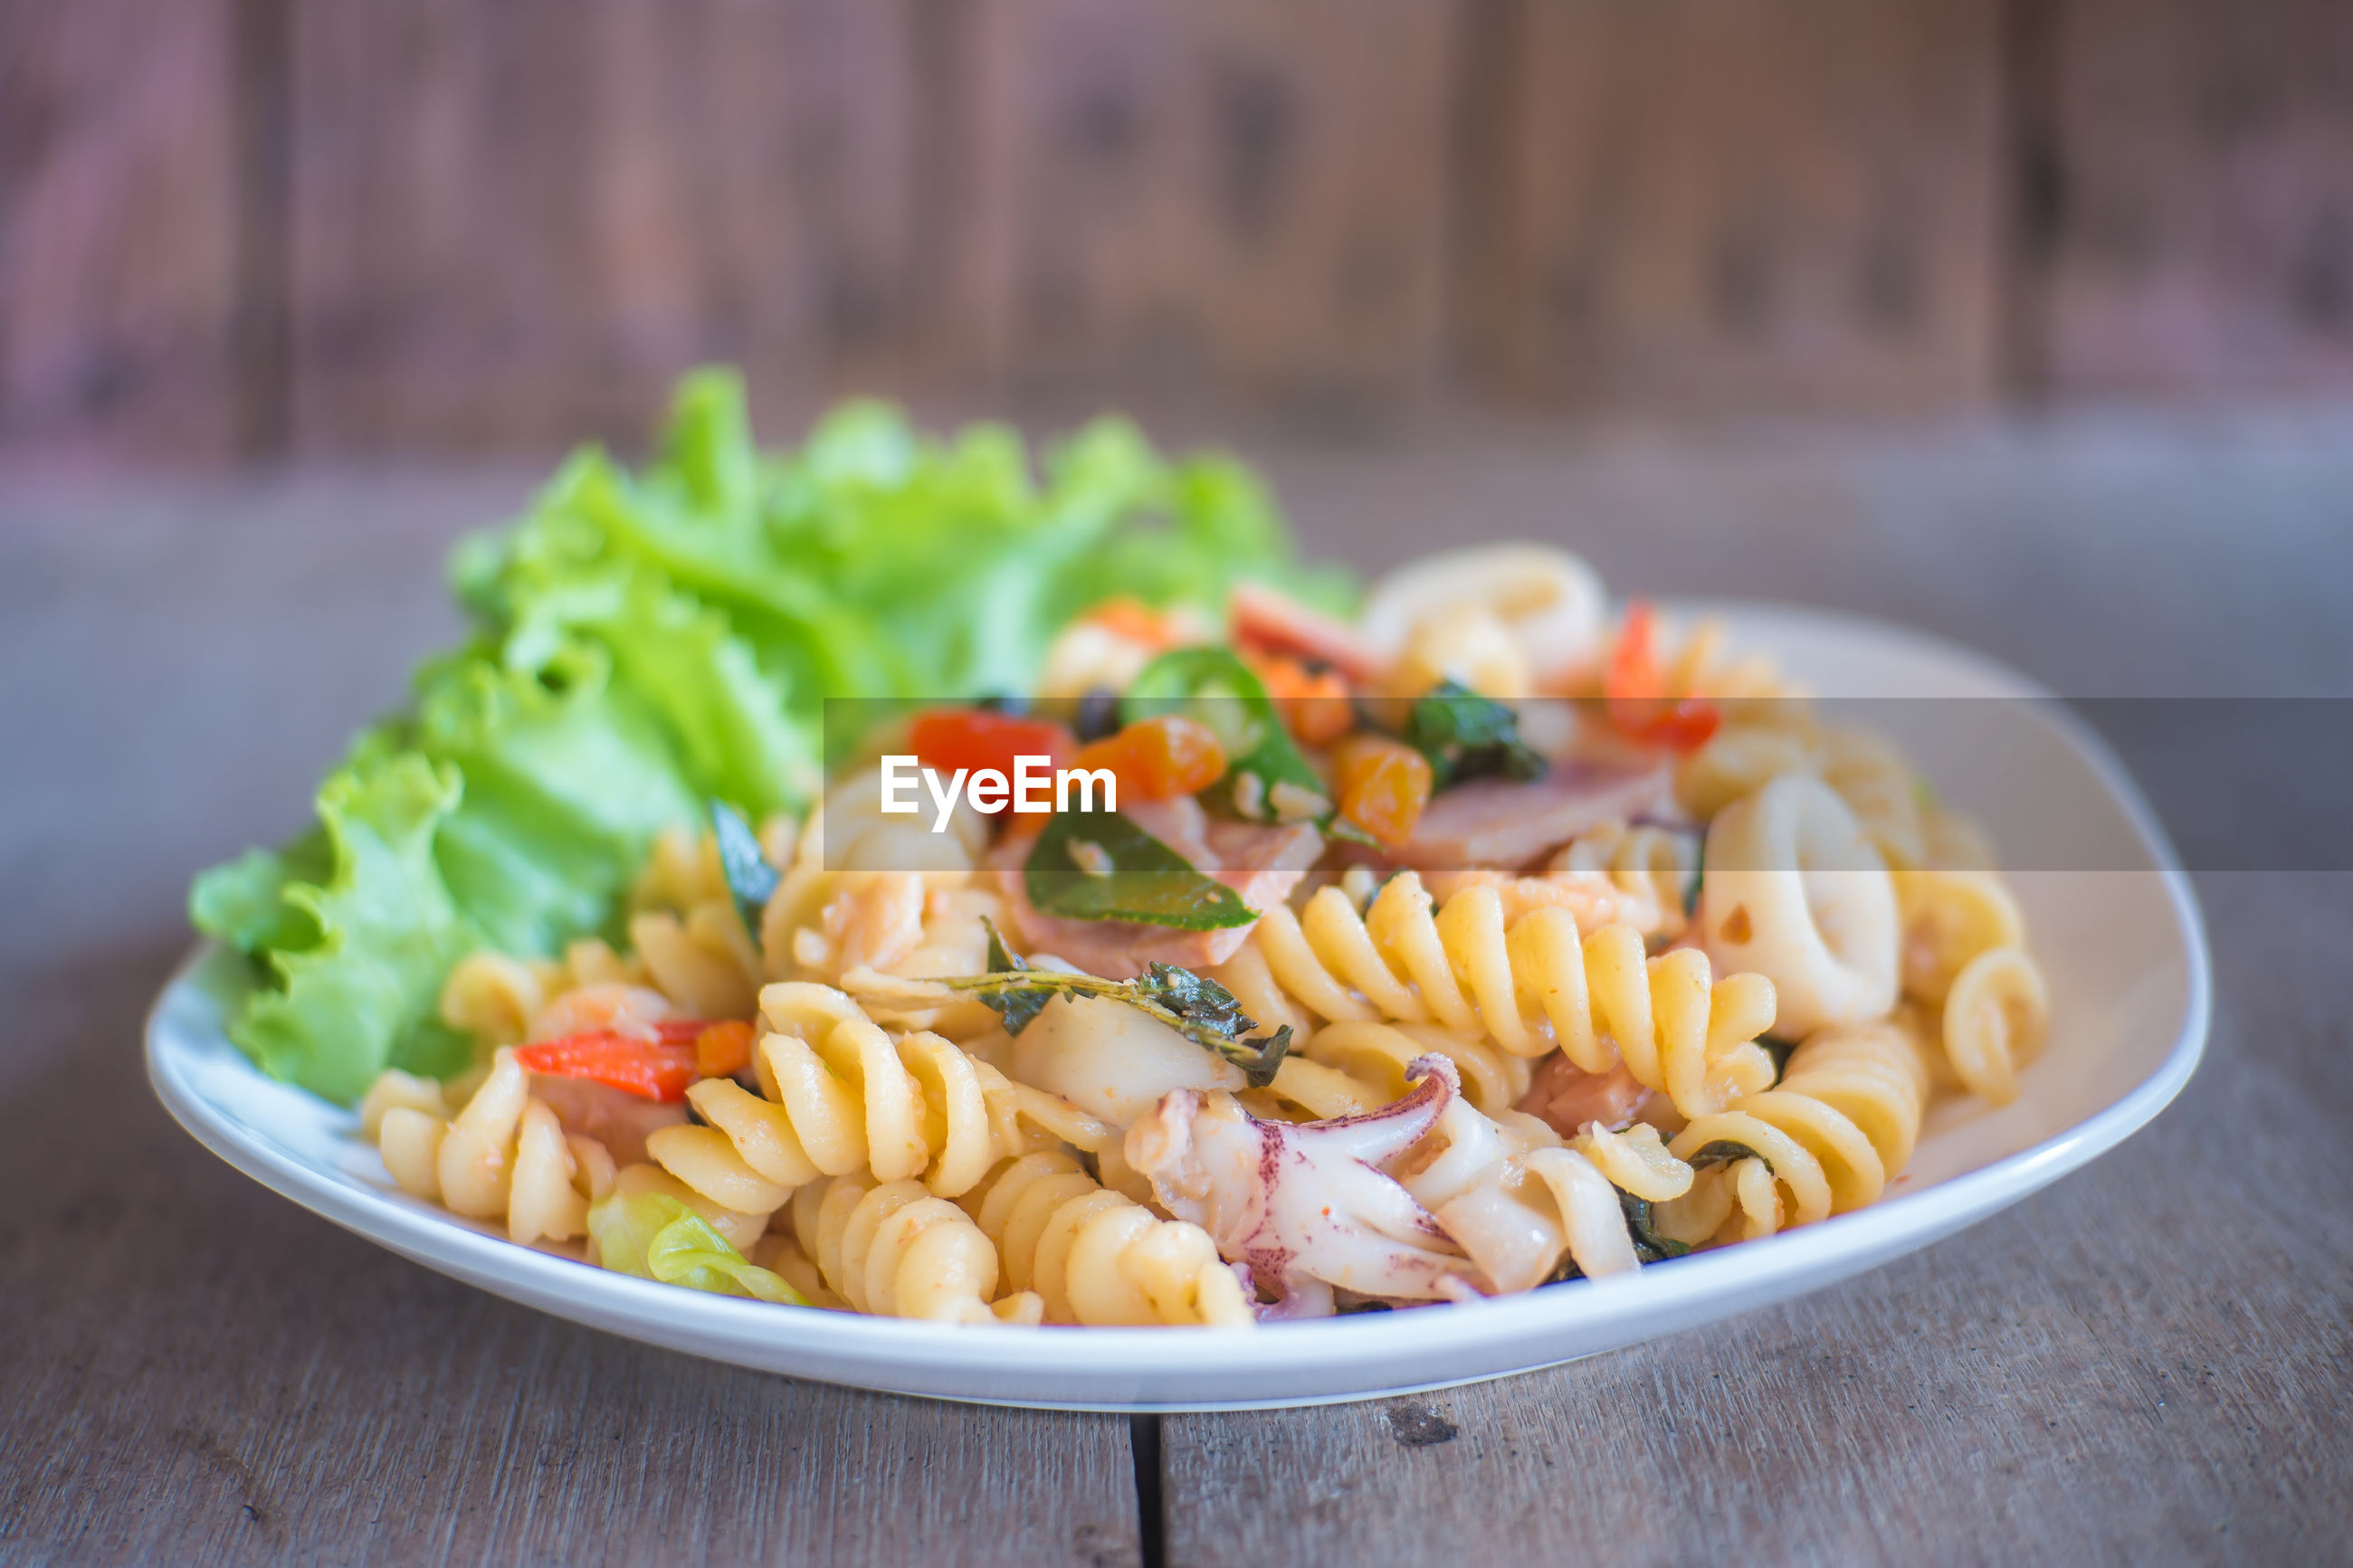 Close-up of pasta served in plate on wooden table